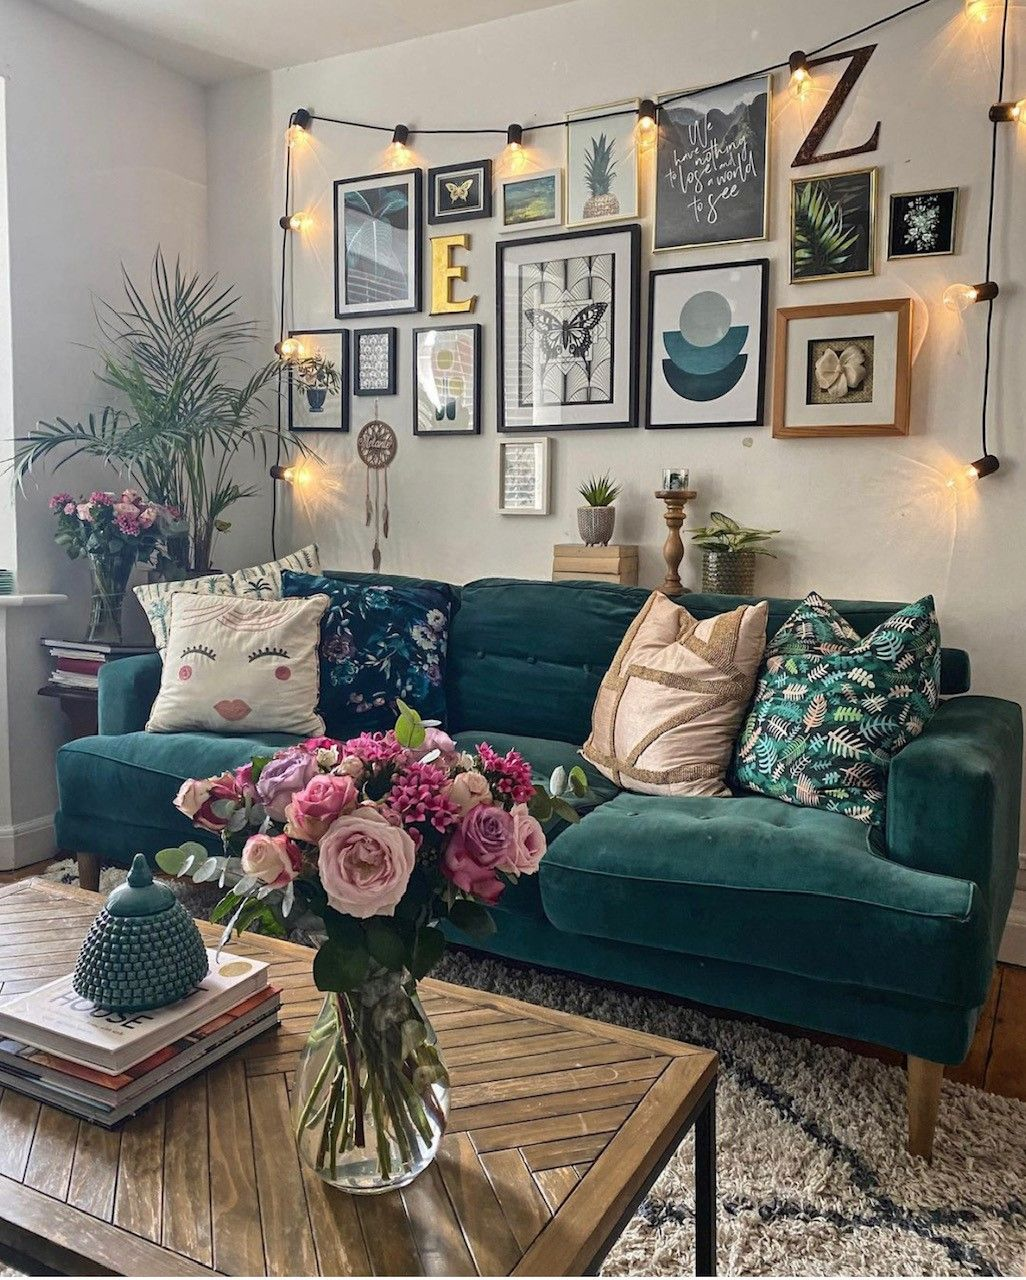 Our Living Room Transformation - House Tour 2021